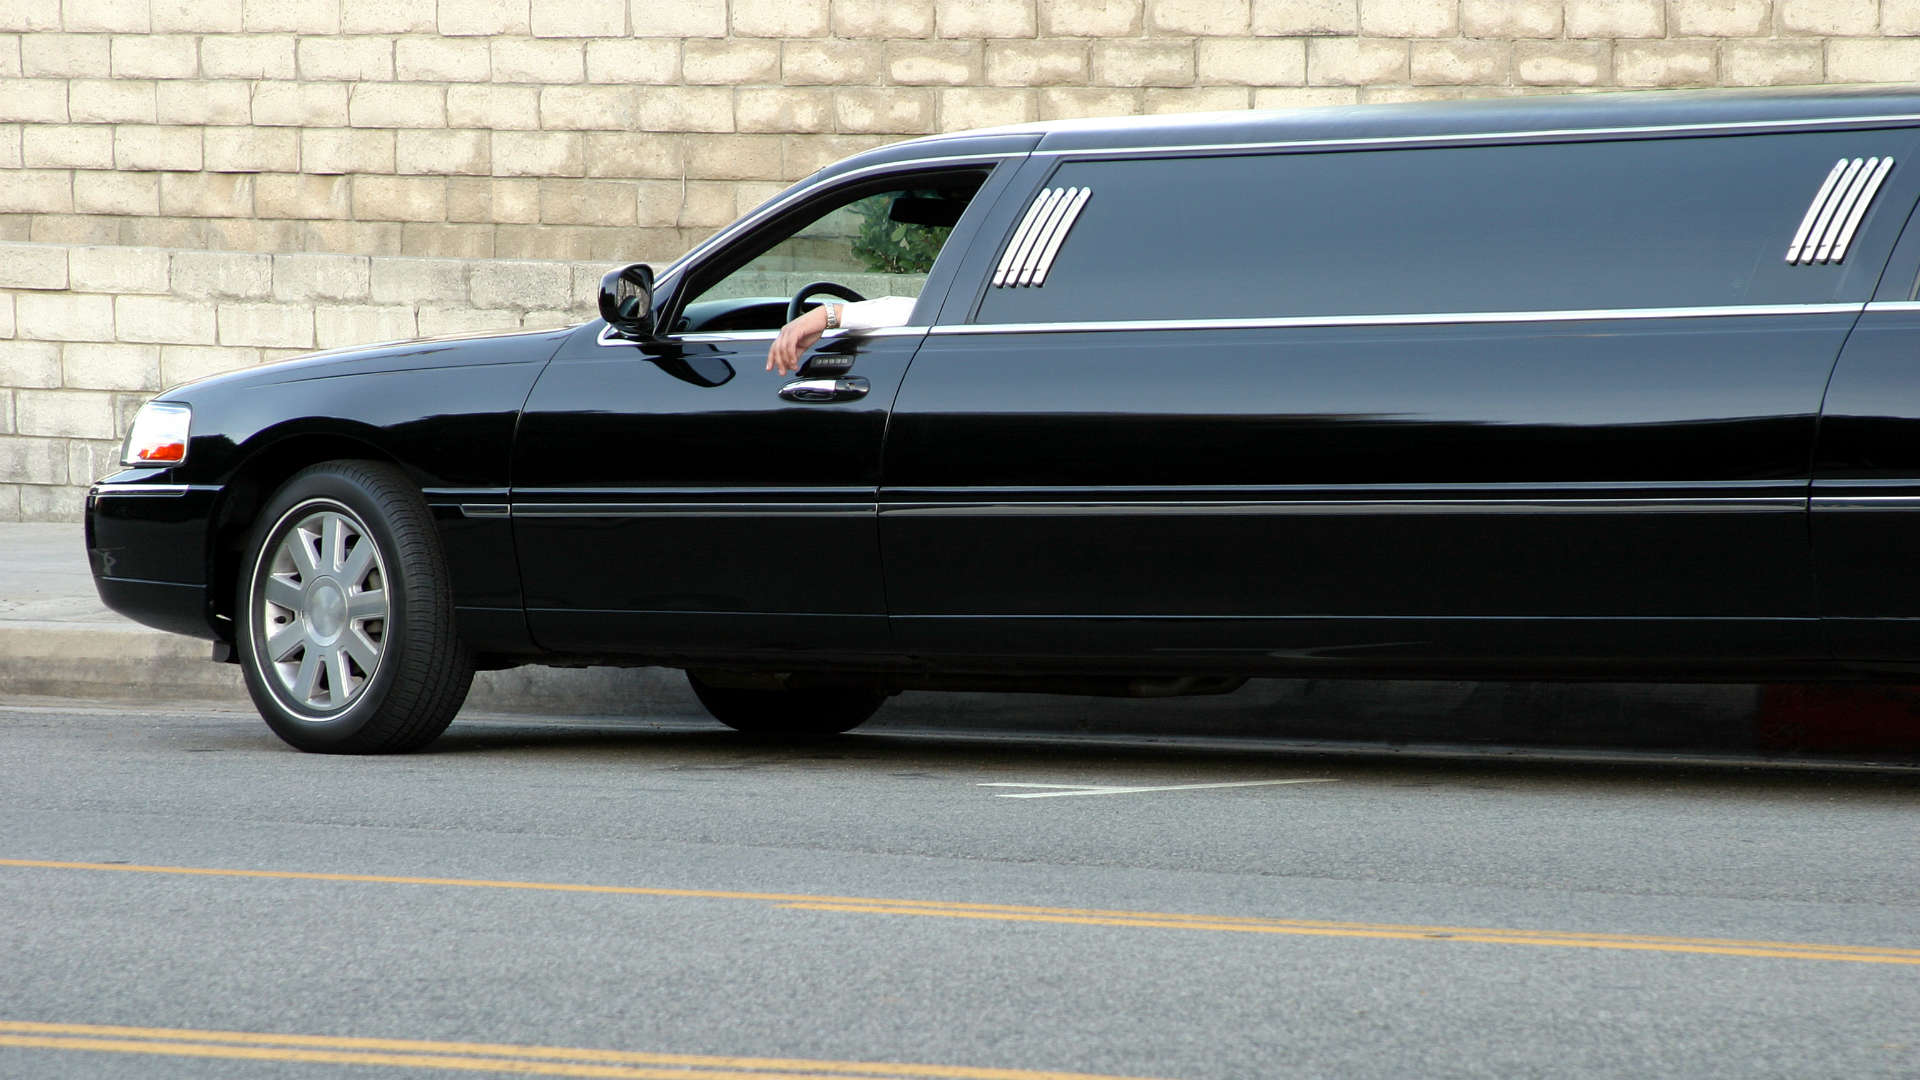 How to check the safety of your prom limo hire car